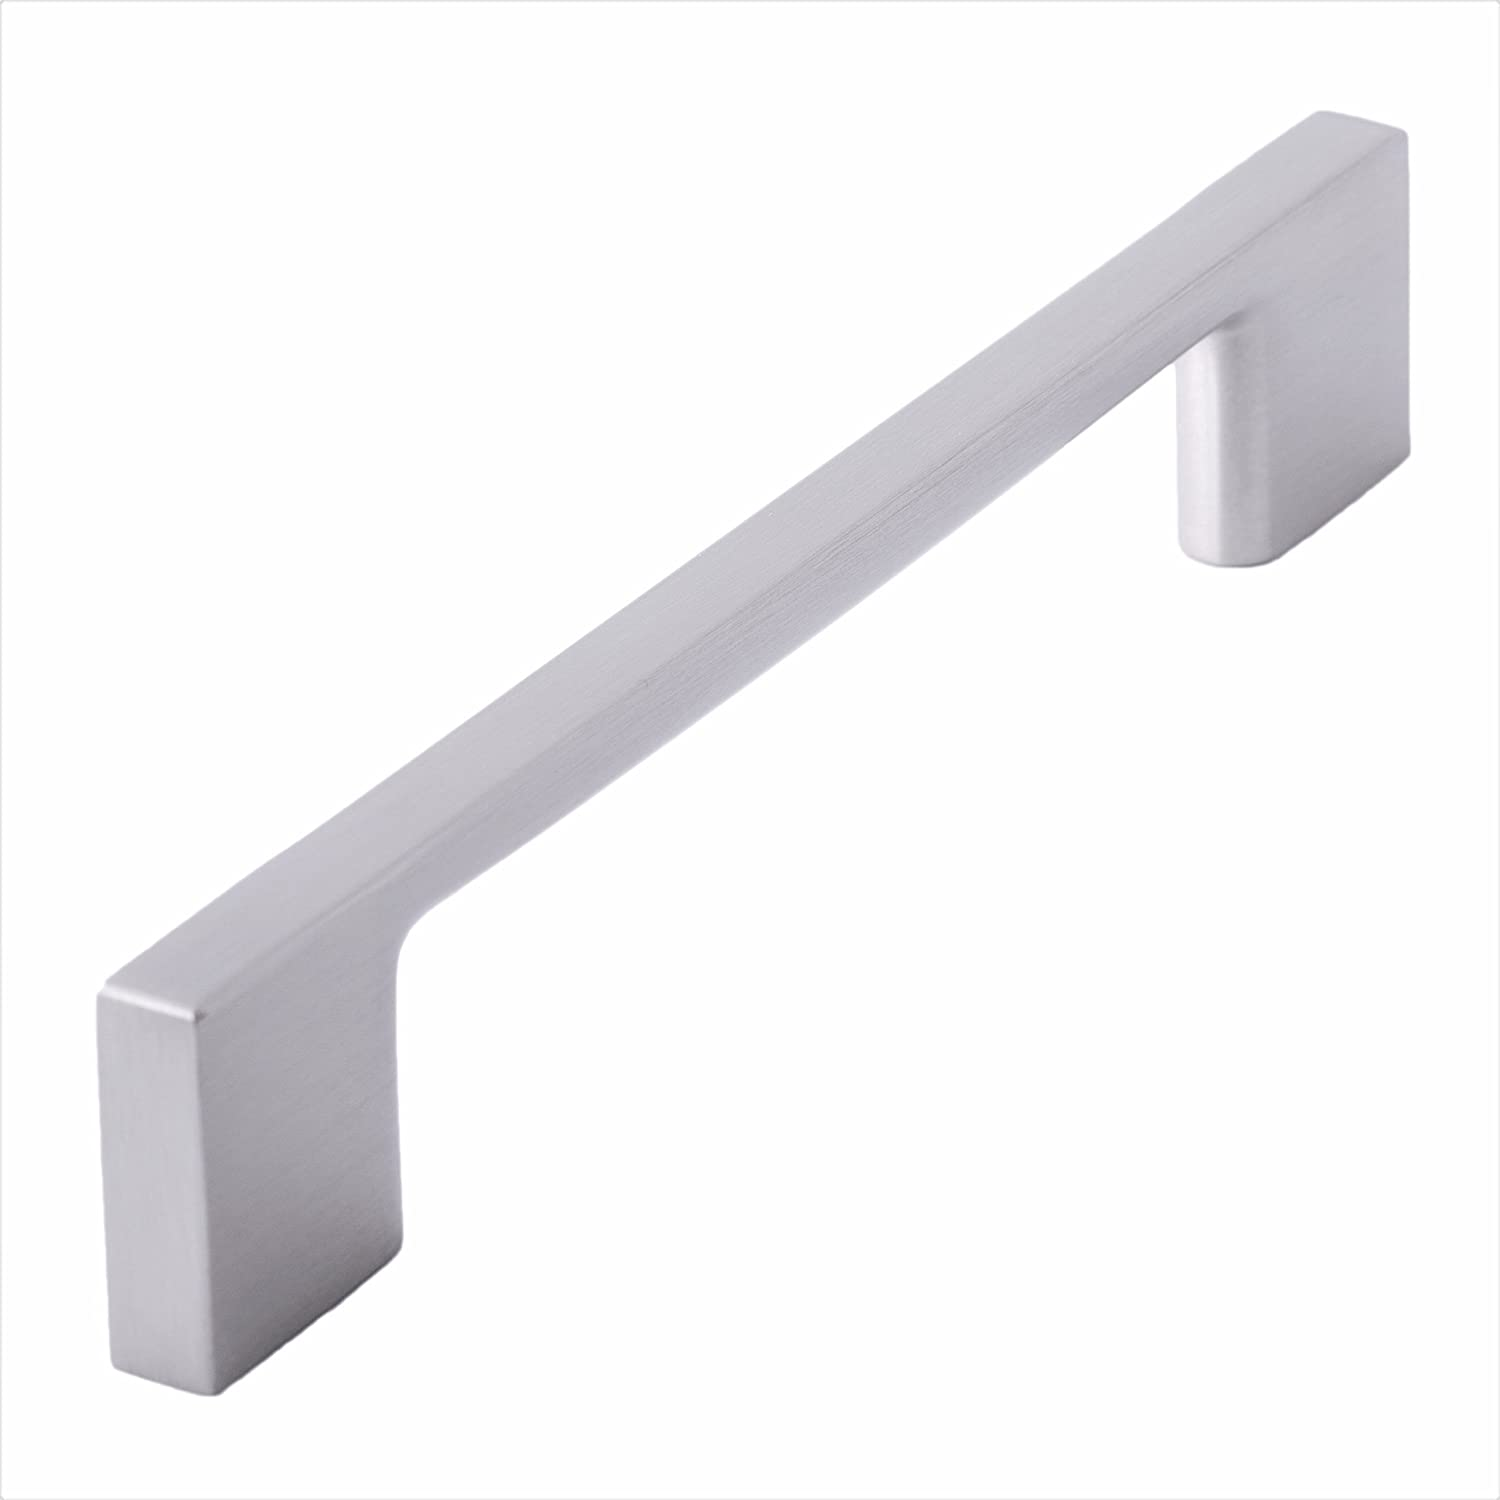 lovely southern hills brushed nickel cabinet handles 63 inches total length 5 inch screw